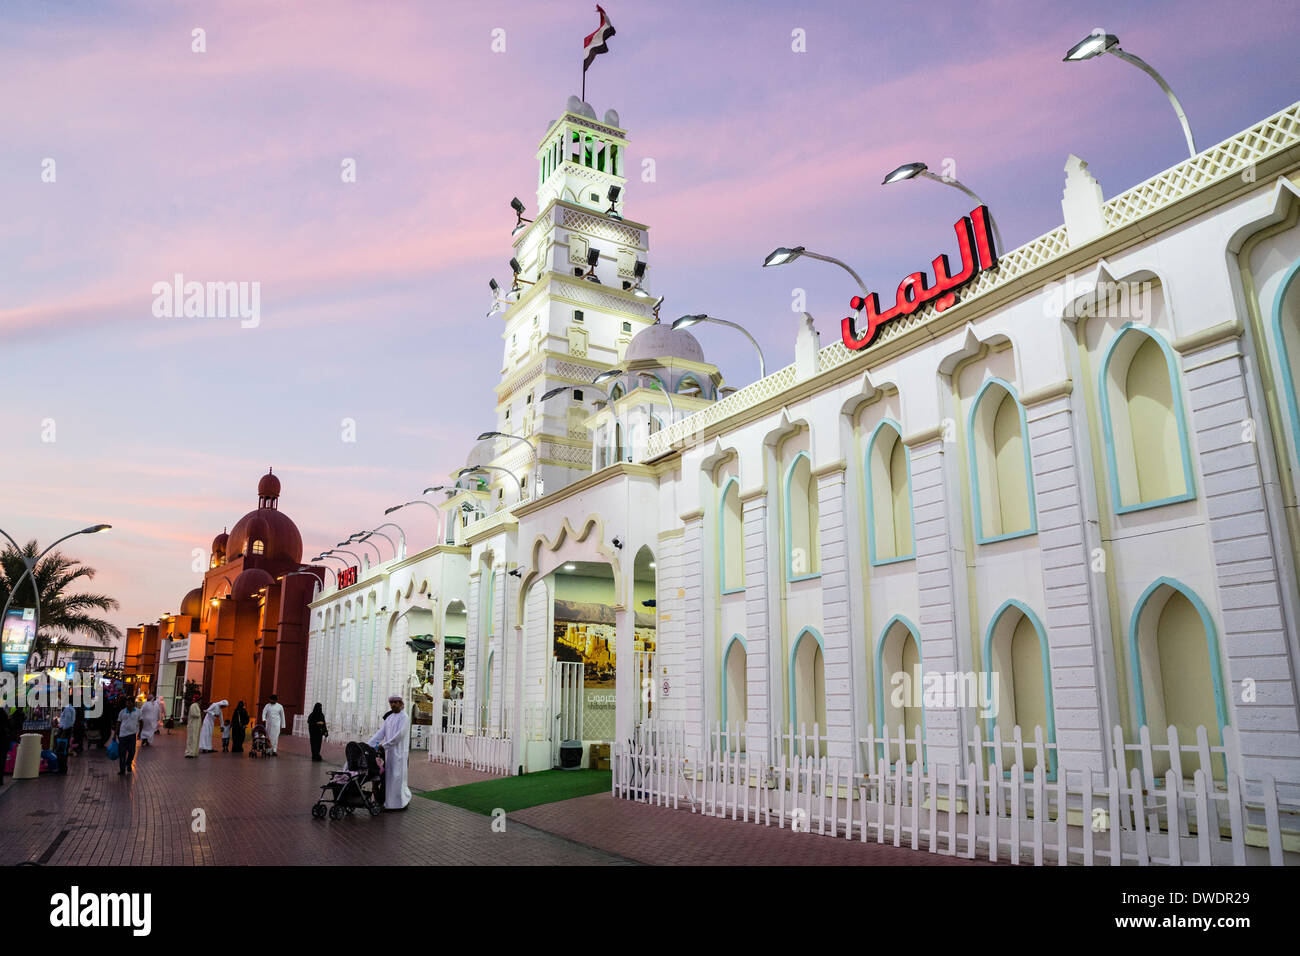 Yemen Pavilion at Global Village tourist cultural attraction in Dubai United Arab Emirates - Stock Image